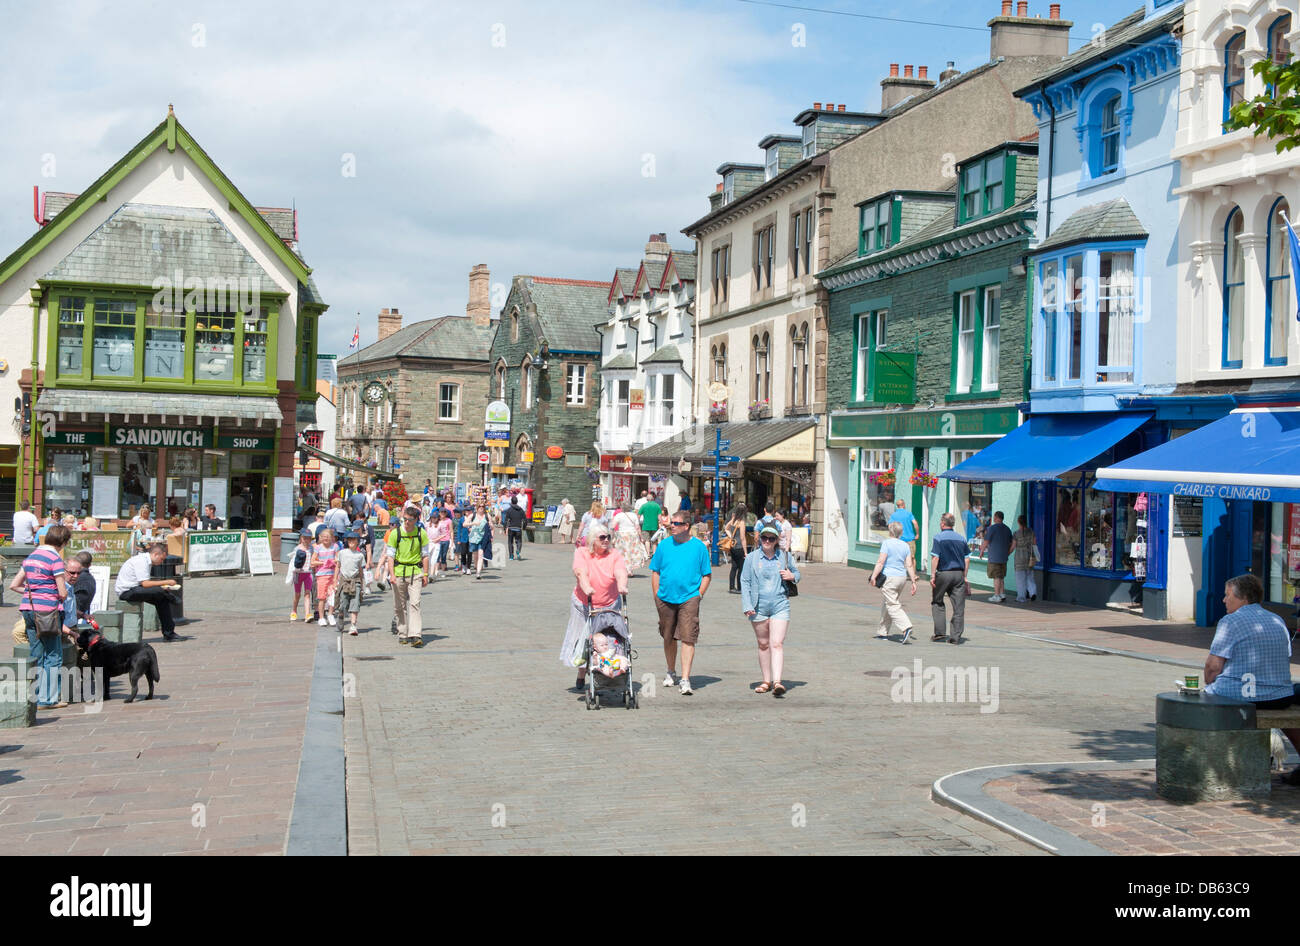 The town centre of Keswick, a tourist attraction in the Lake District. - Stock Image